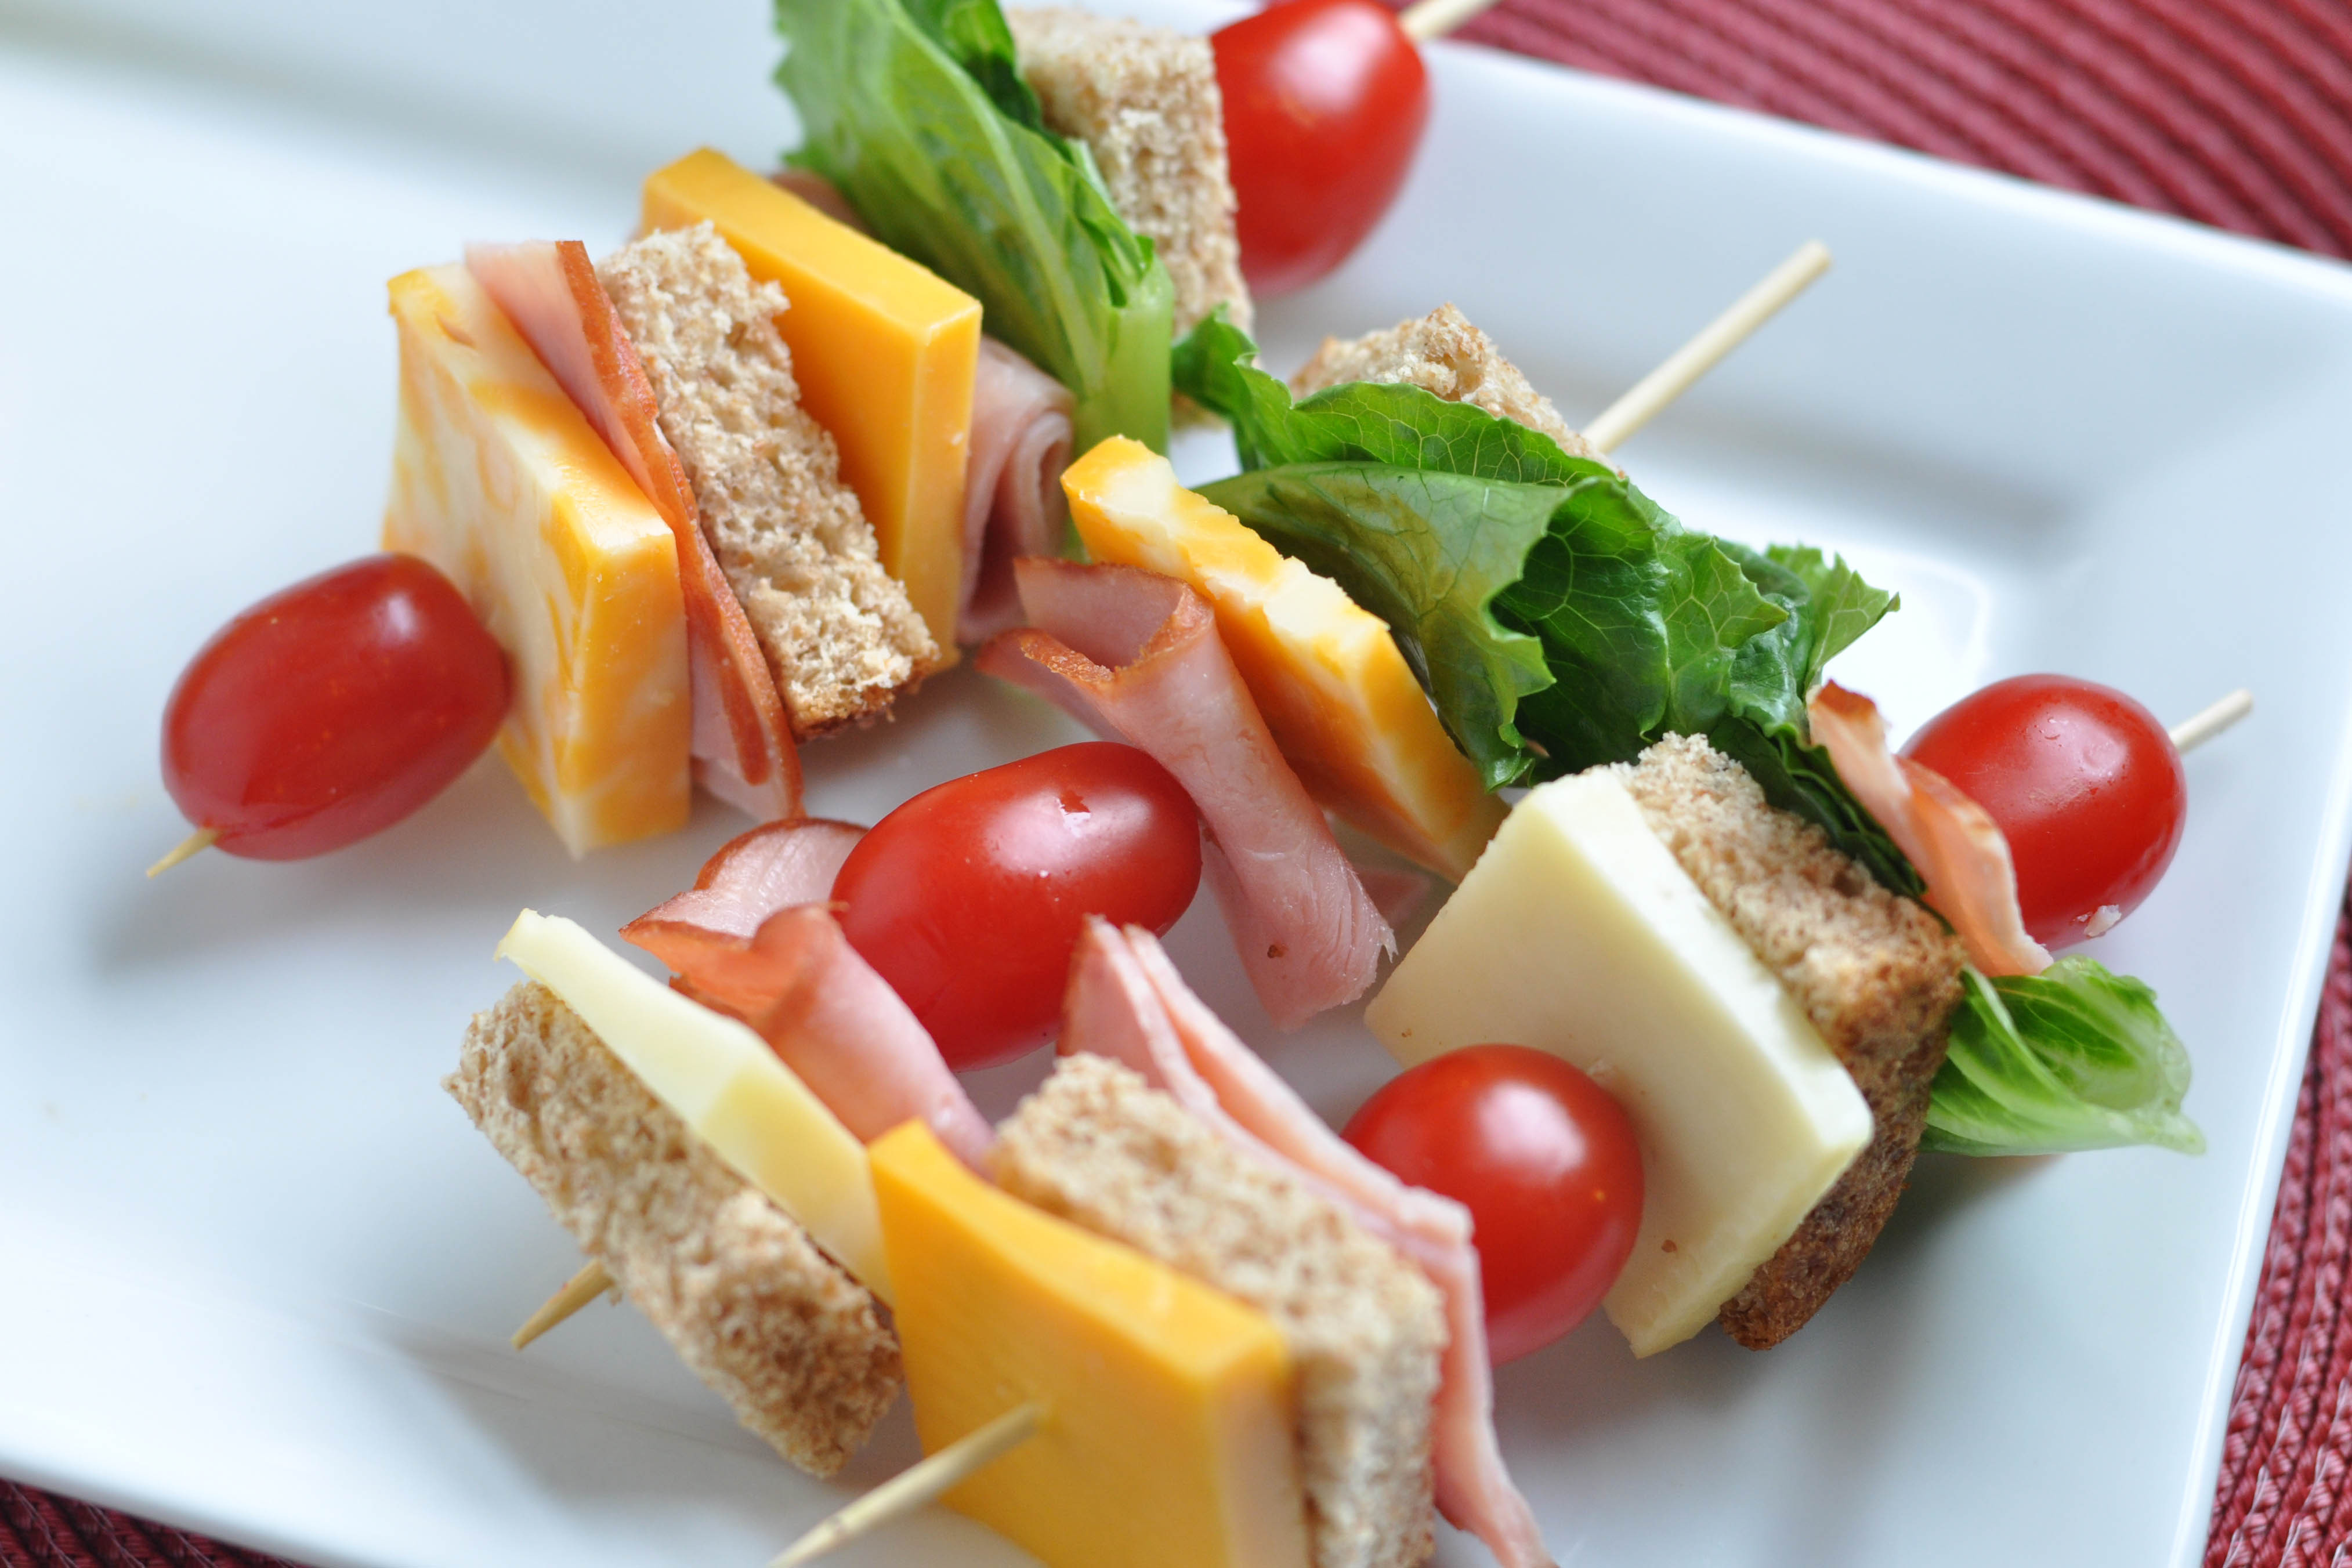 Healthy Kid Lunches  Healthy Kid Lunches Part 2 Nutritious Eats